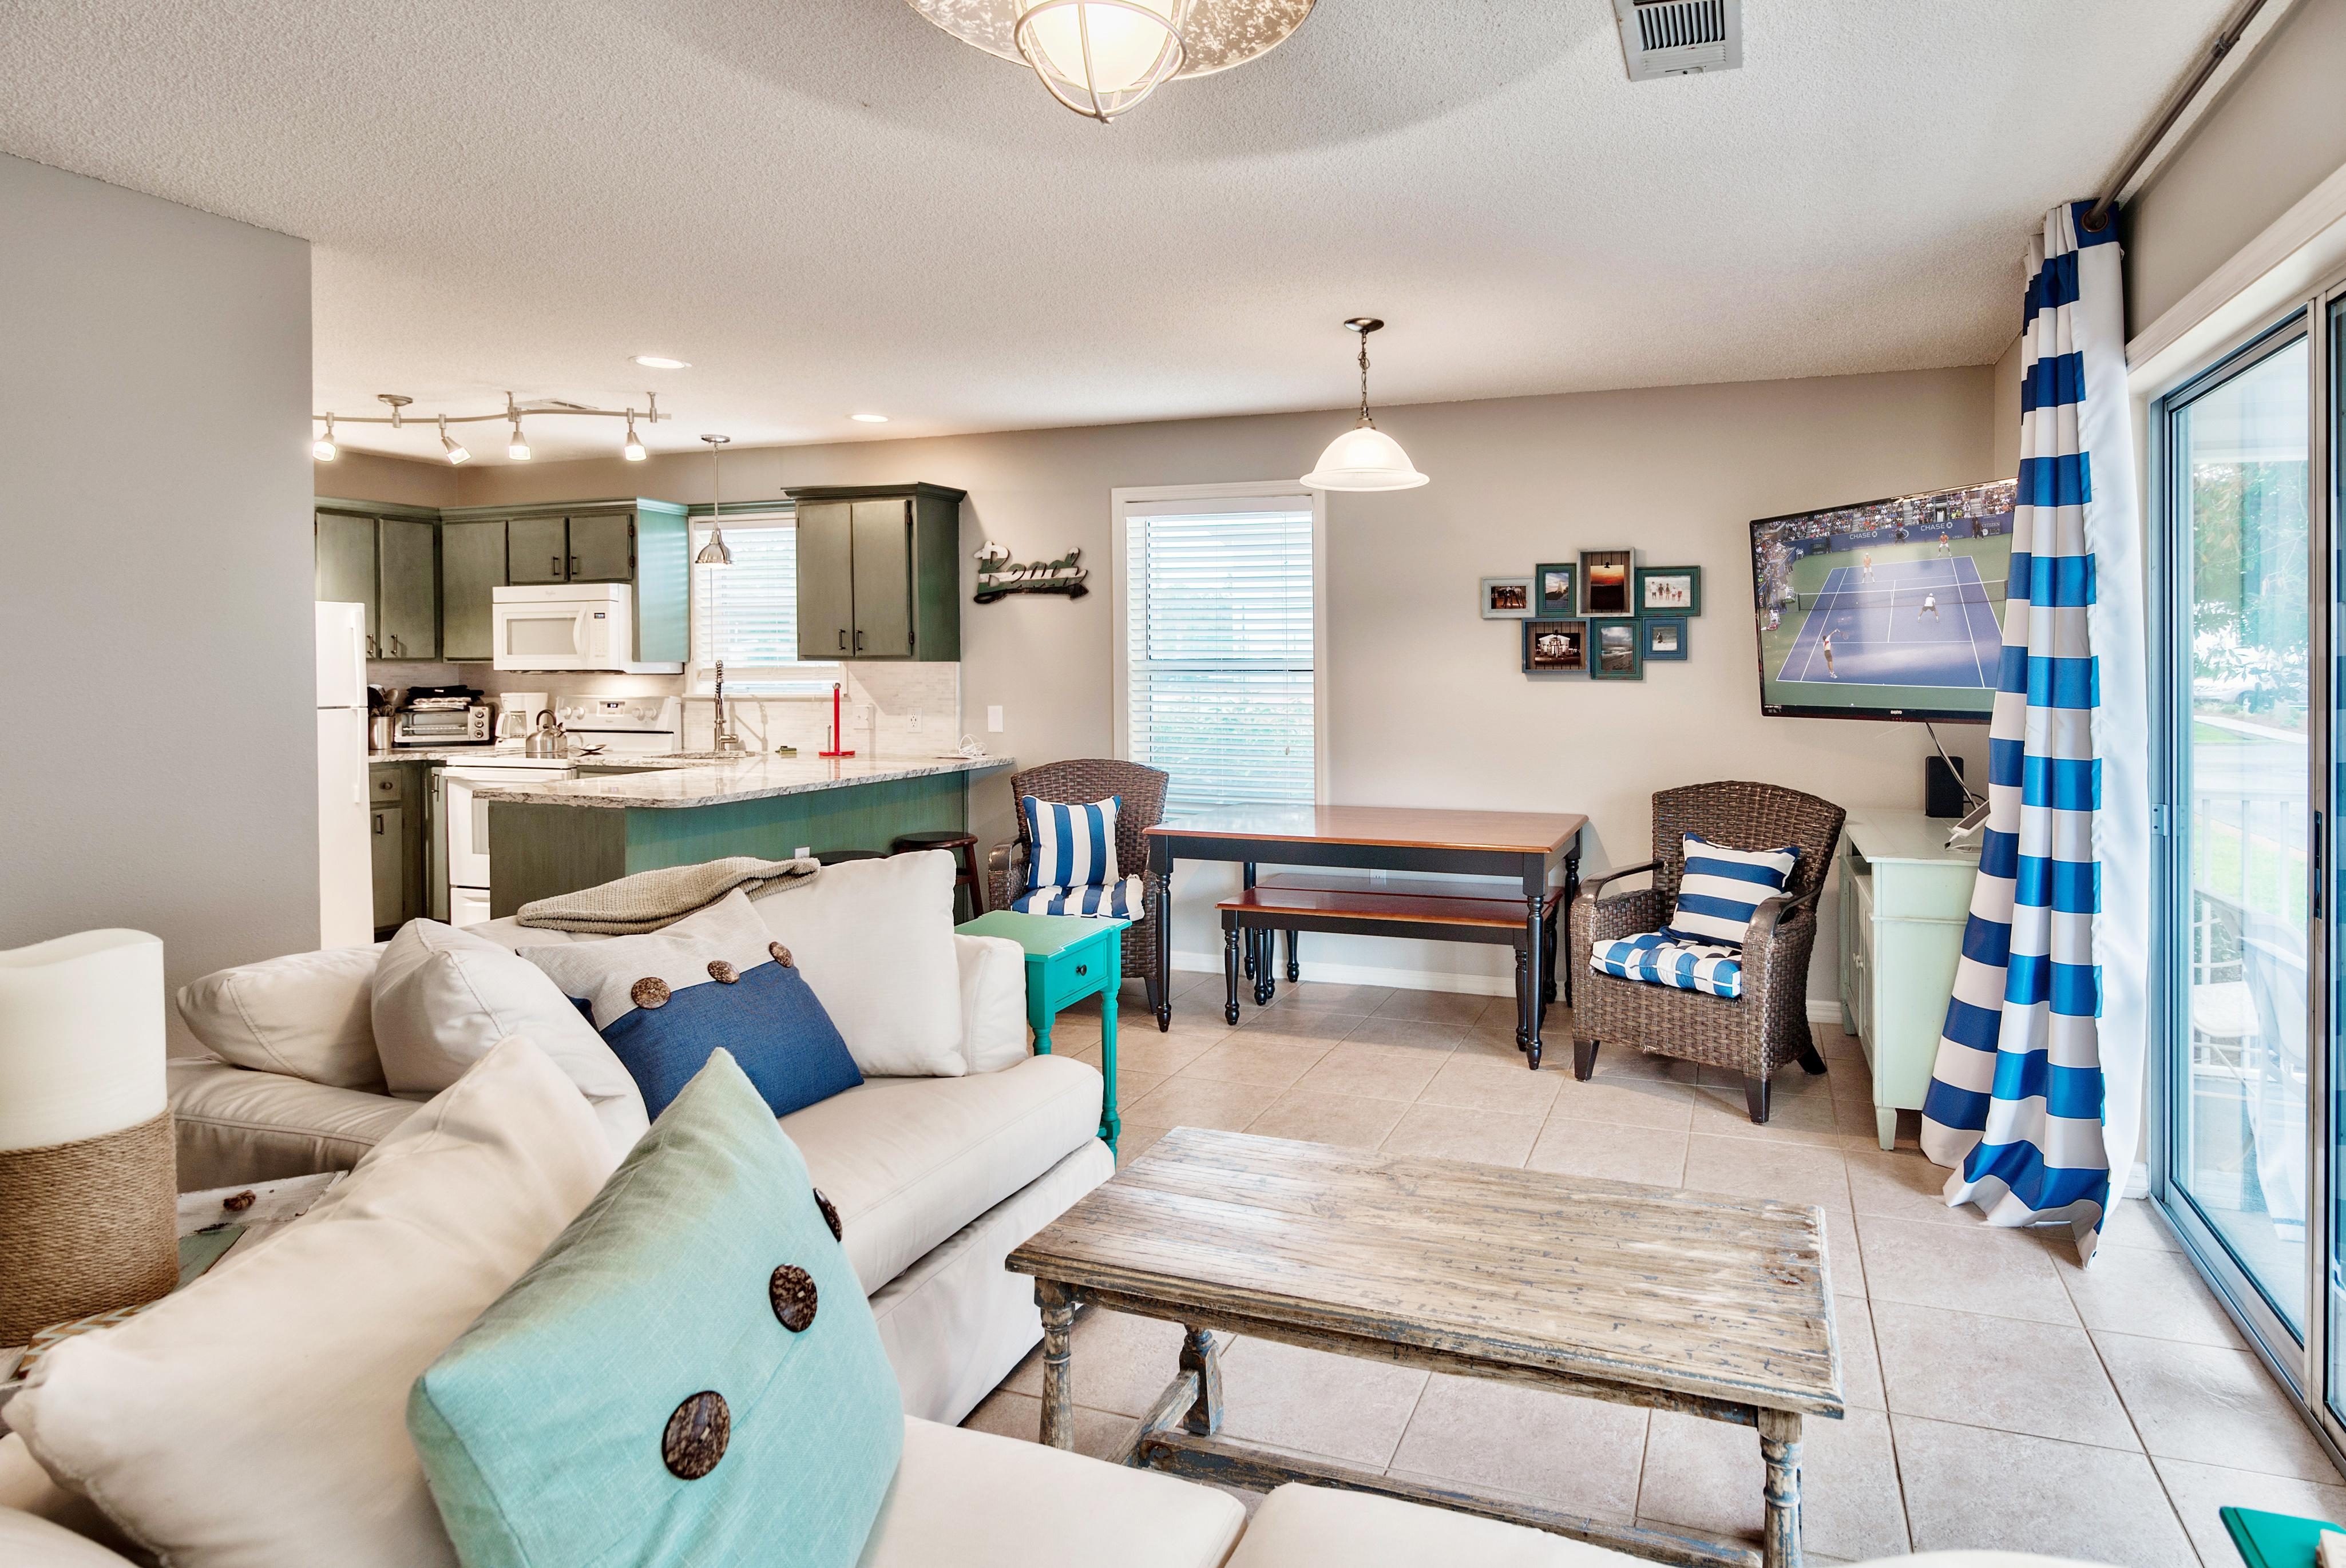 Welcome to Santa Rosa Beach! This condo is professionally managed by TurnKey Vacation Rentals.